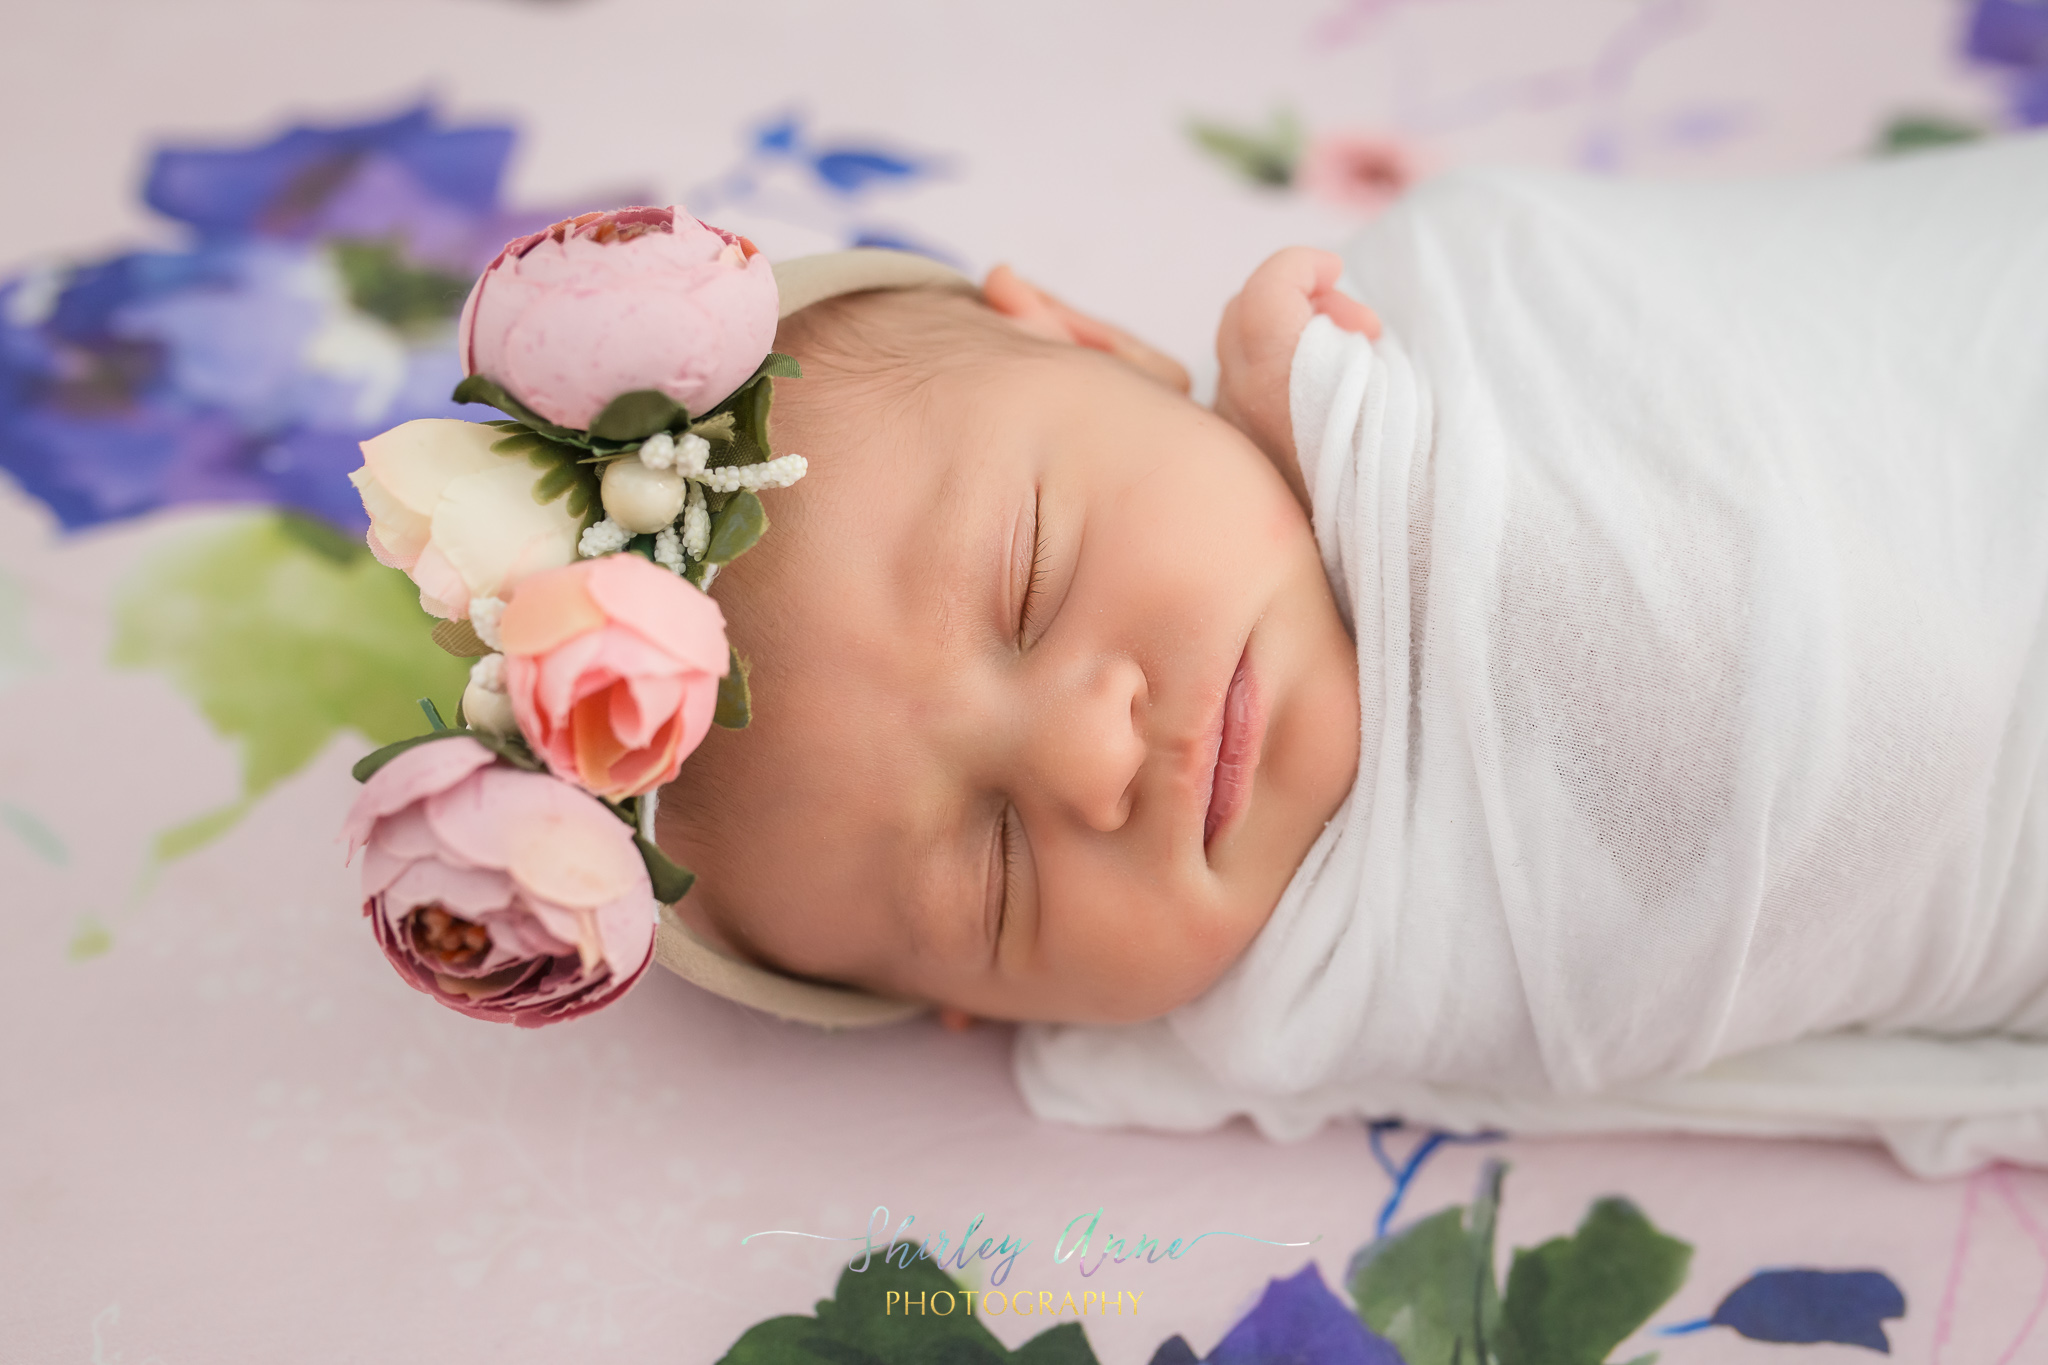 newborn baby with flower crown newborn session